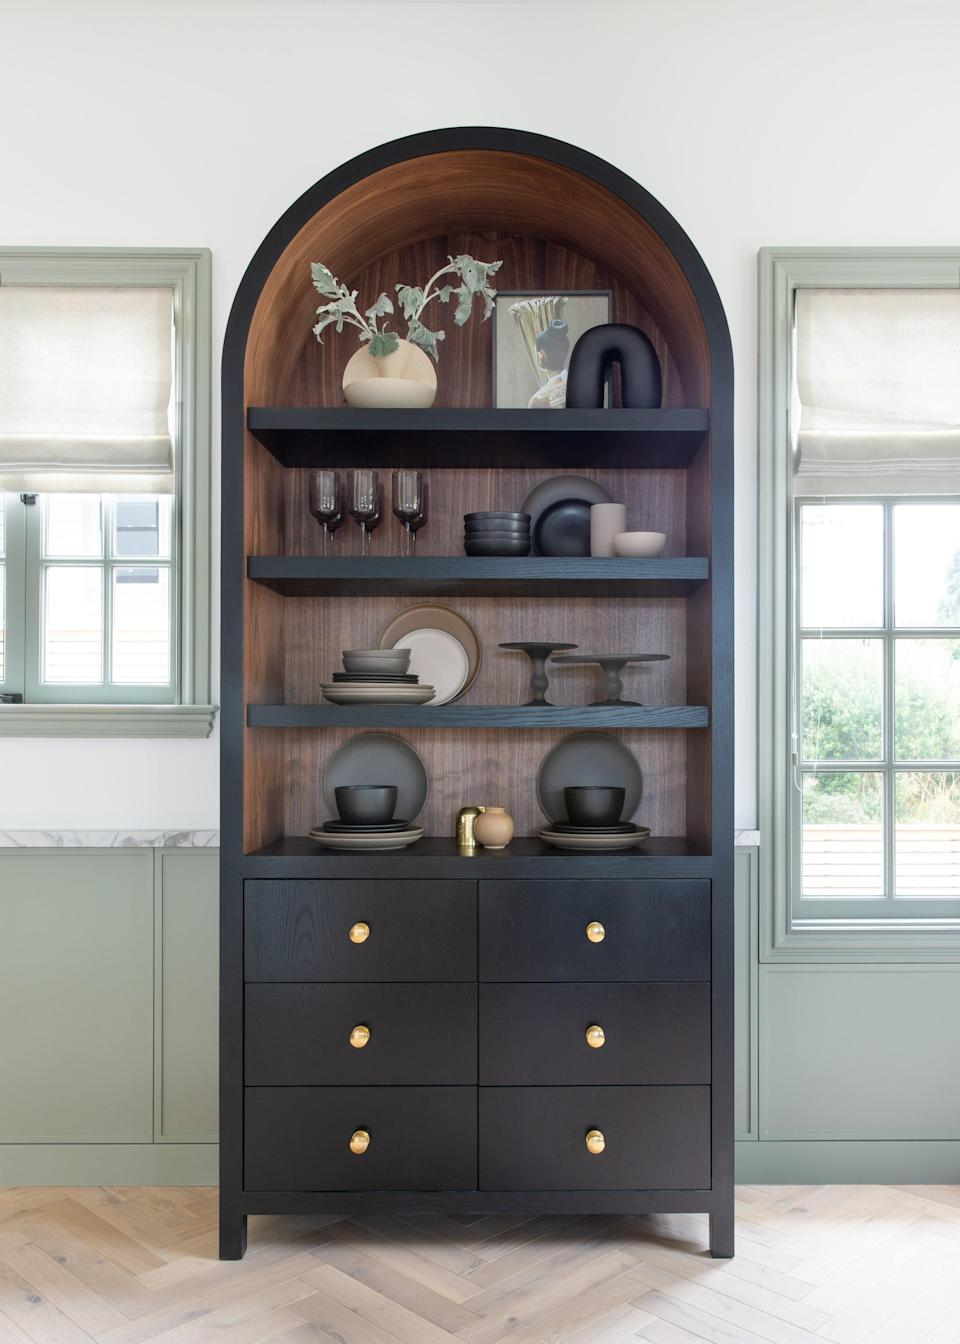 "<div class=""caption"">The walnut cabinet fits between two windows of varying heights. Not only does it trick the eye to make the area appear symmetrical, but because the kitchen has no upper cabinetry, it was important to have a functional piece.</div>"